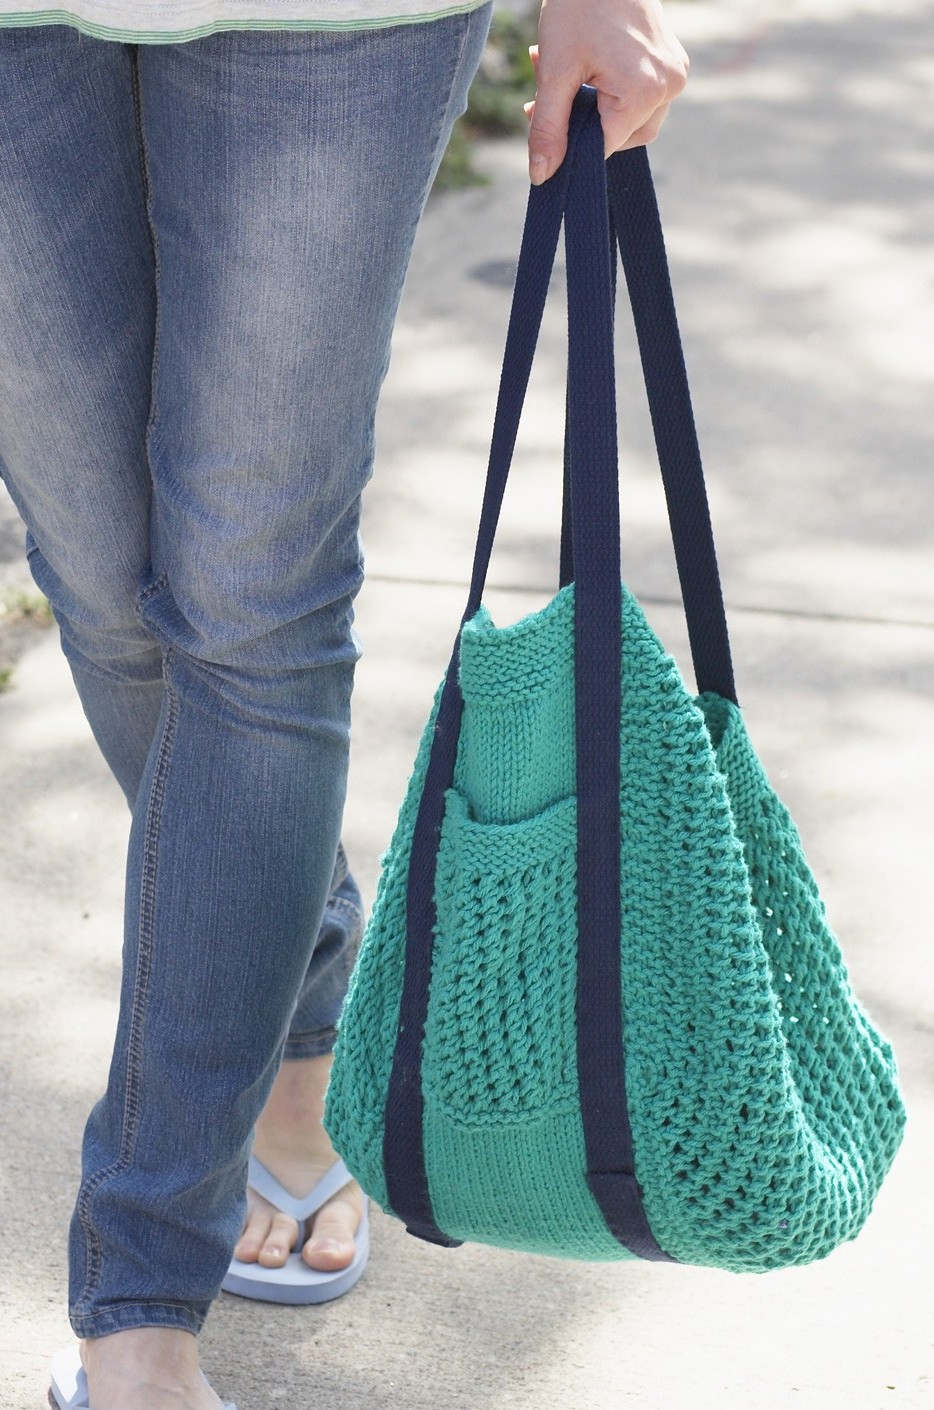 Free knitting pattern for Go Green Market Bag